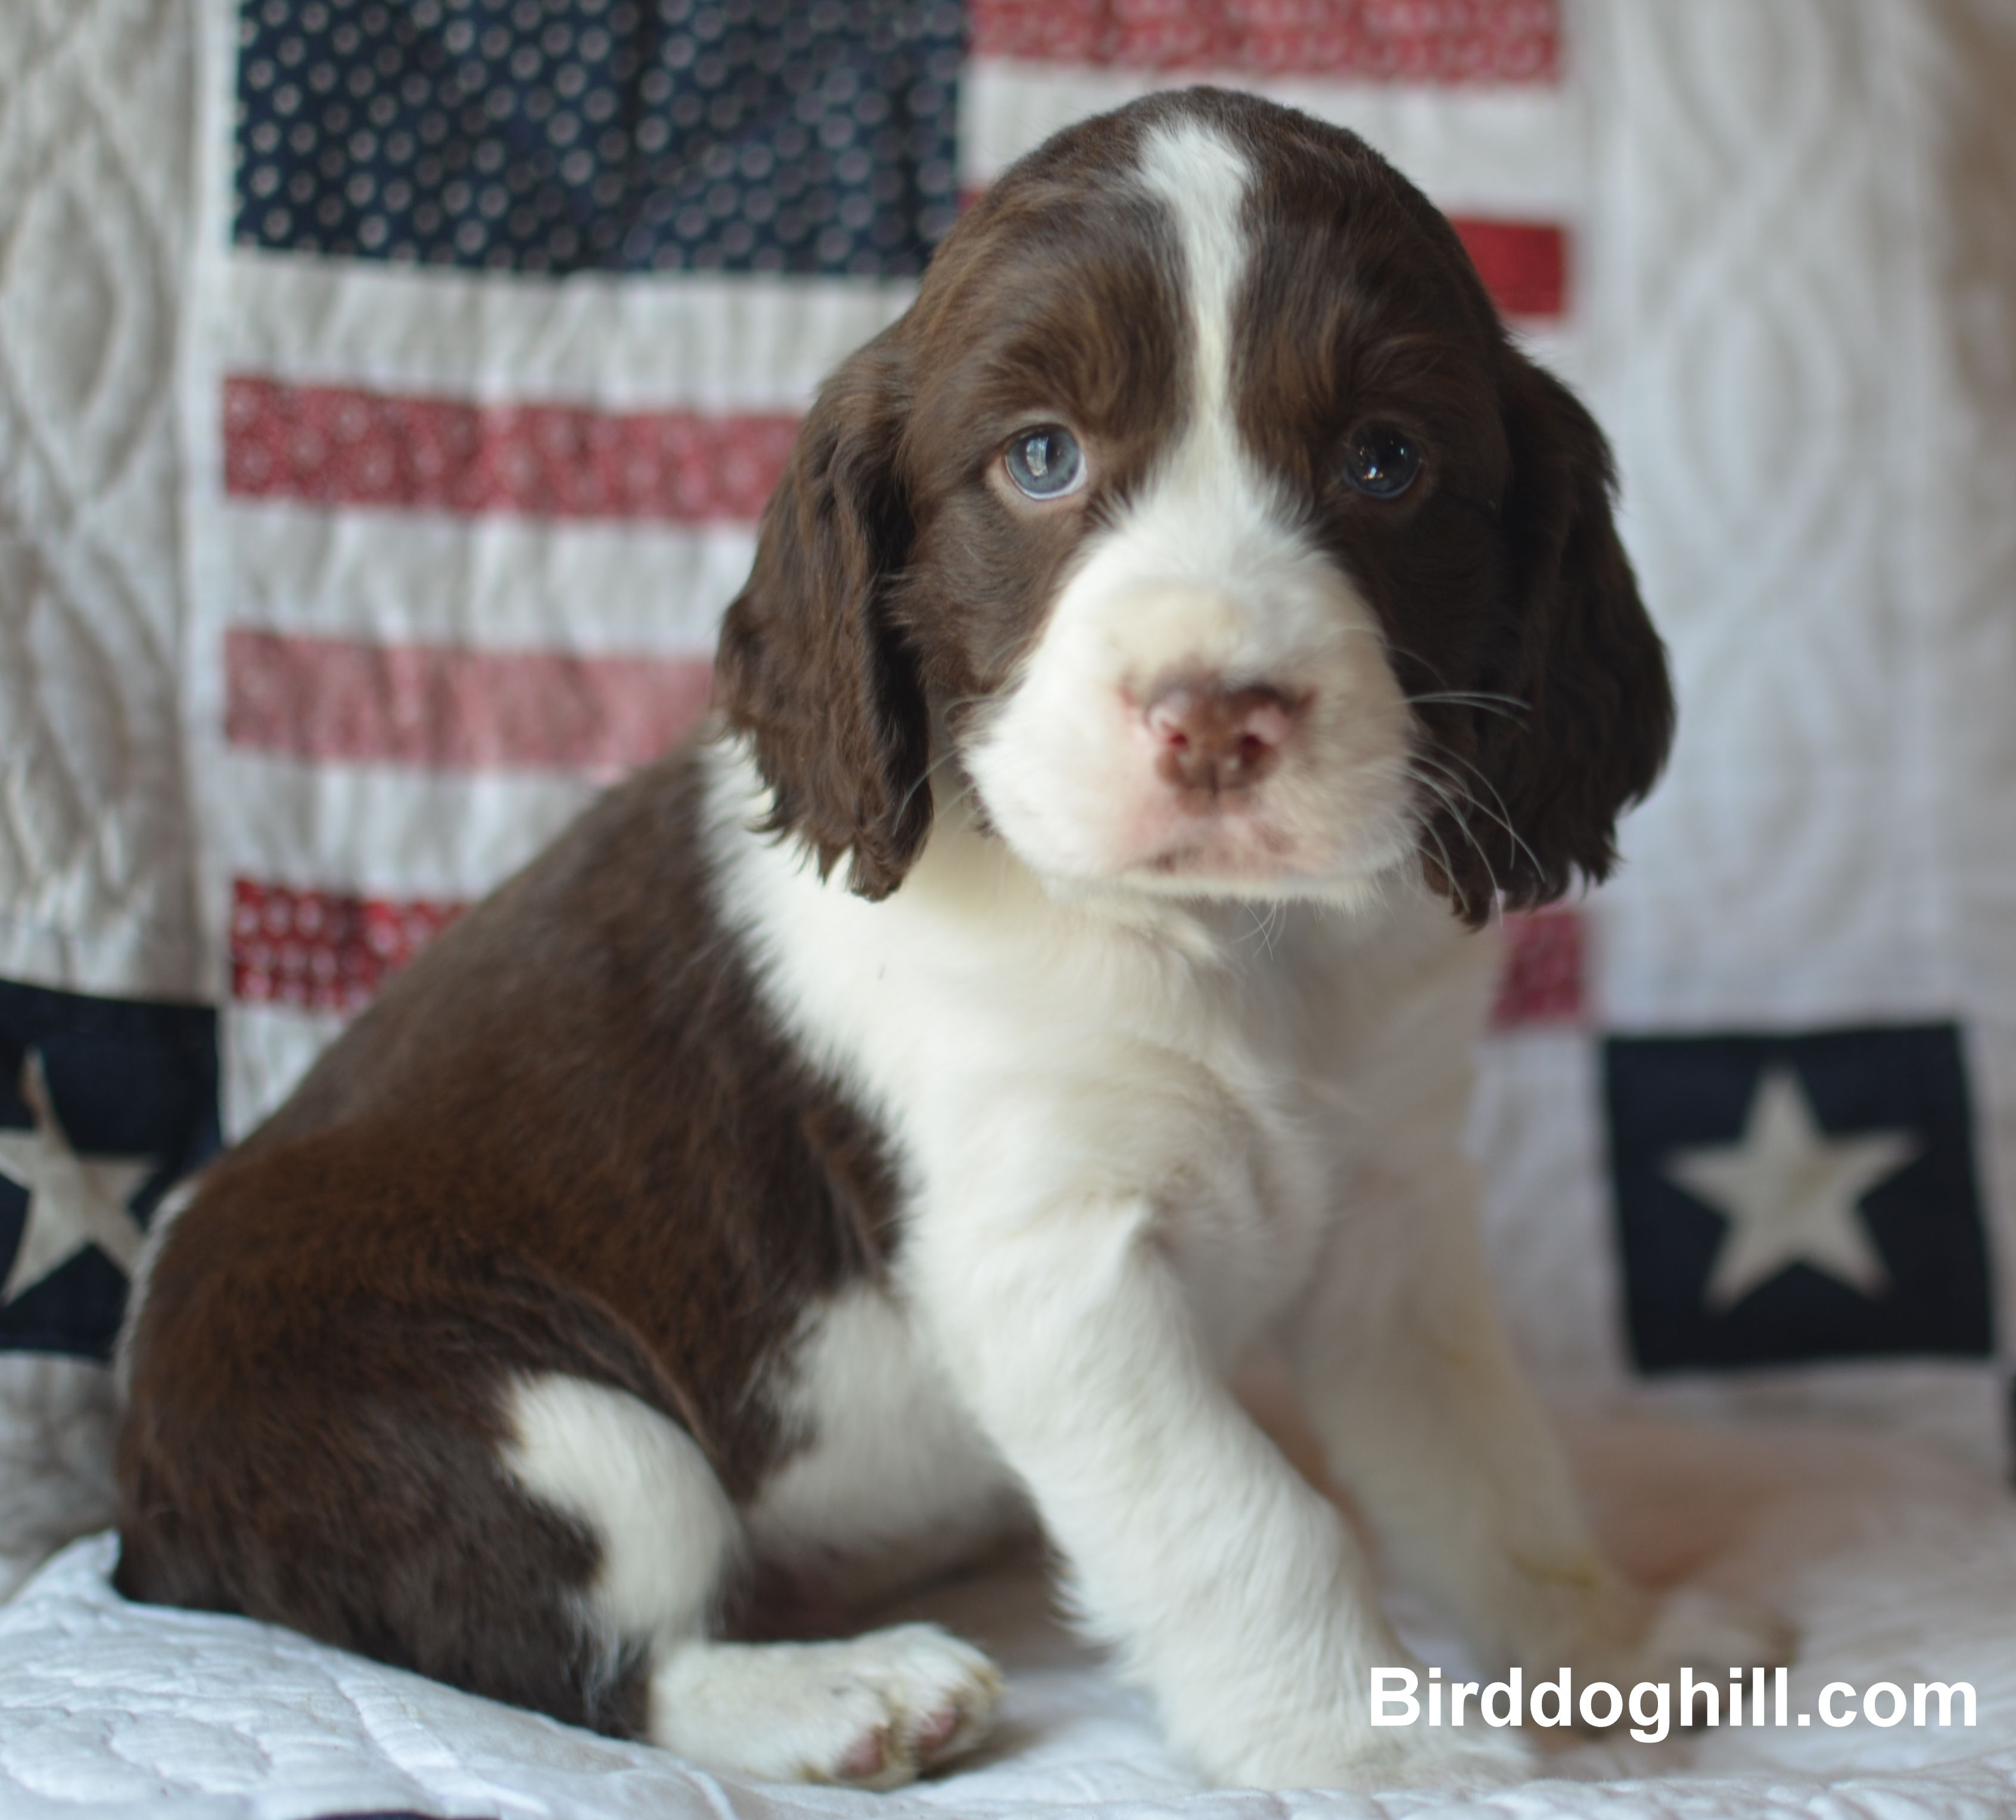 English Springer Spaniel Puppy From Birddoghill Puppies And Kitties English Springer Spaniel Puppy English Springer Spaniel